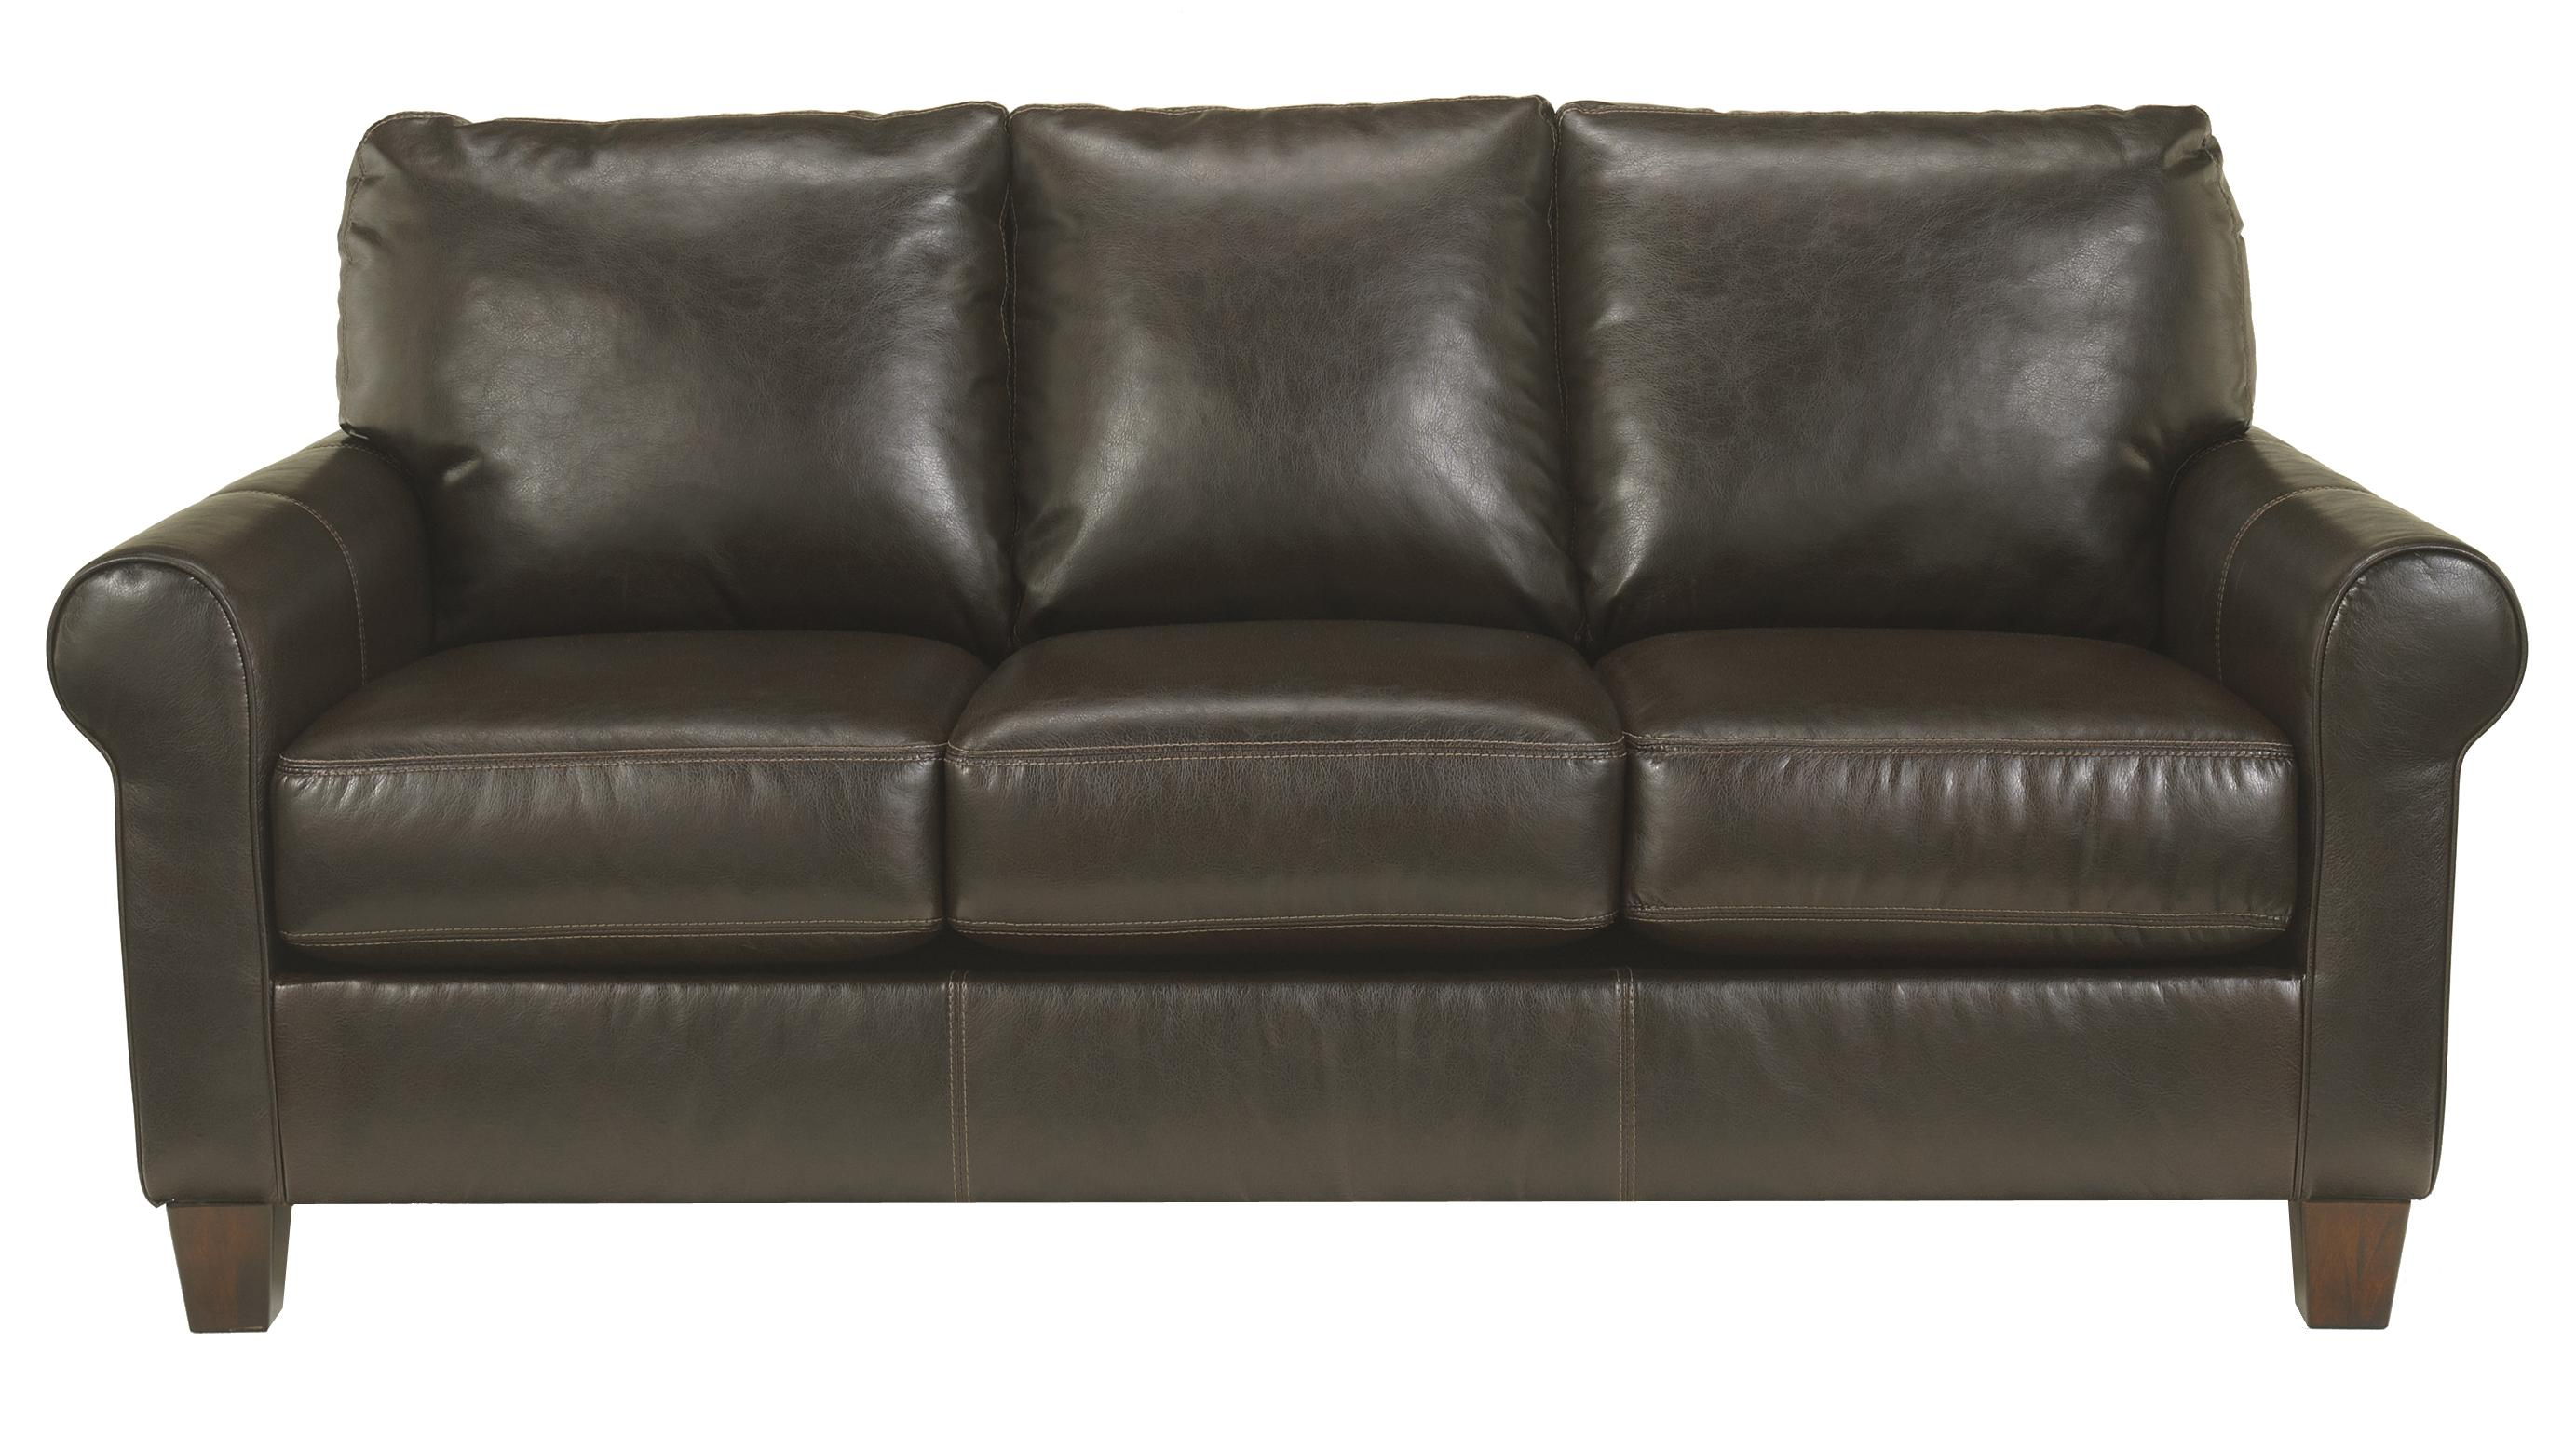 Ashley/Benchcraft Nastas DuraBlend - Bark Sofa - Item Number: 2330038